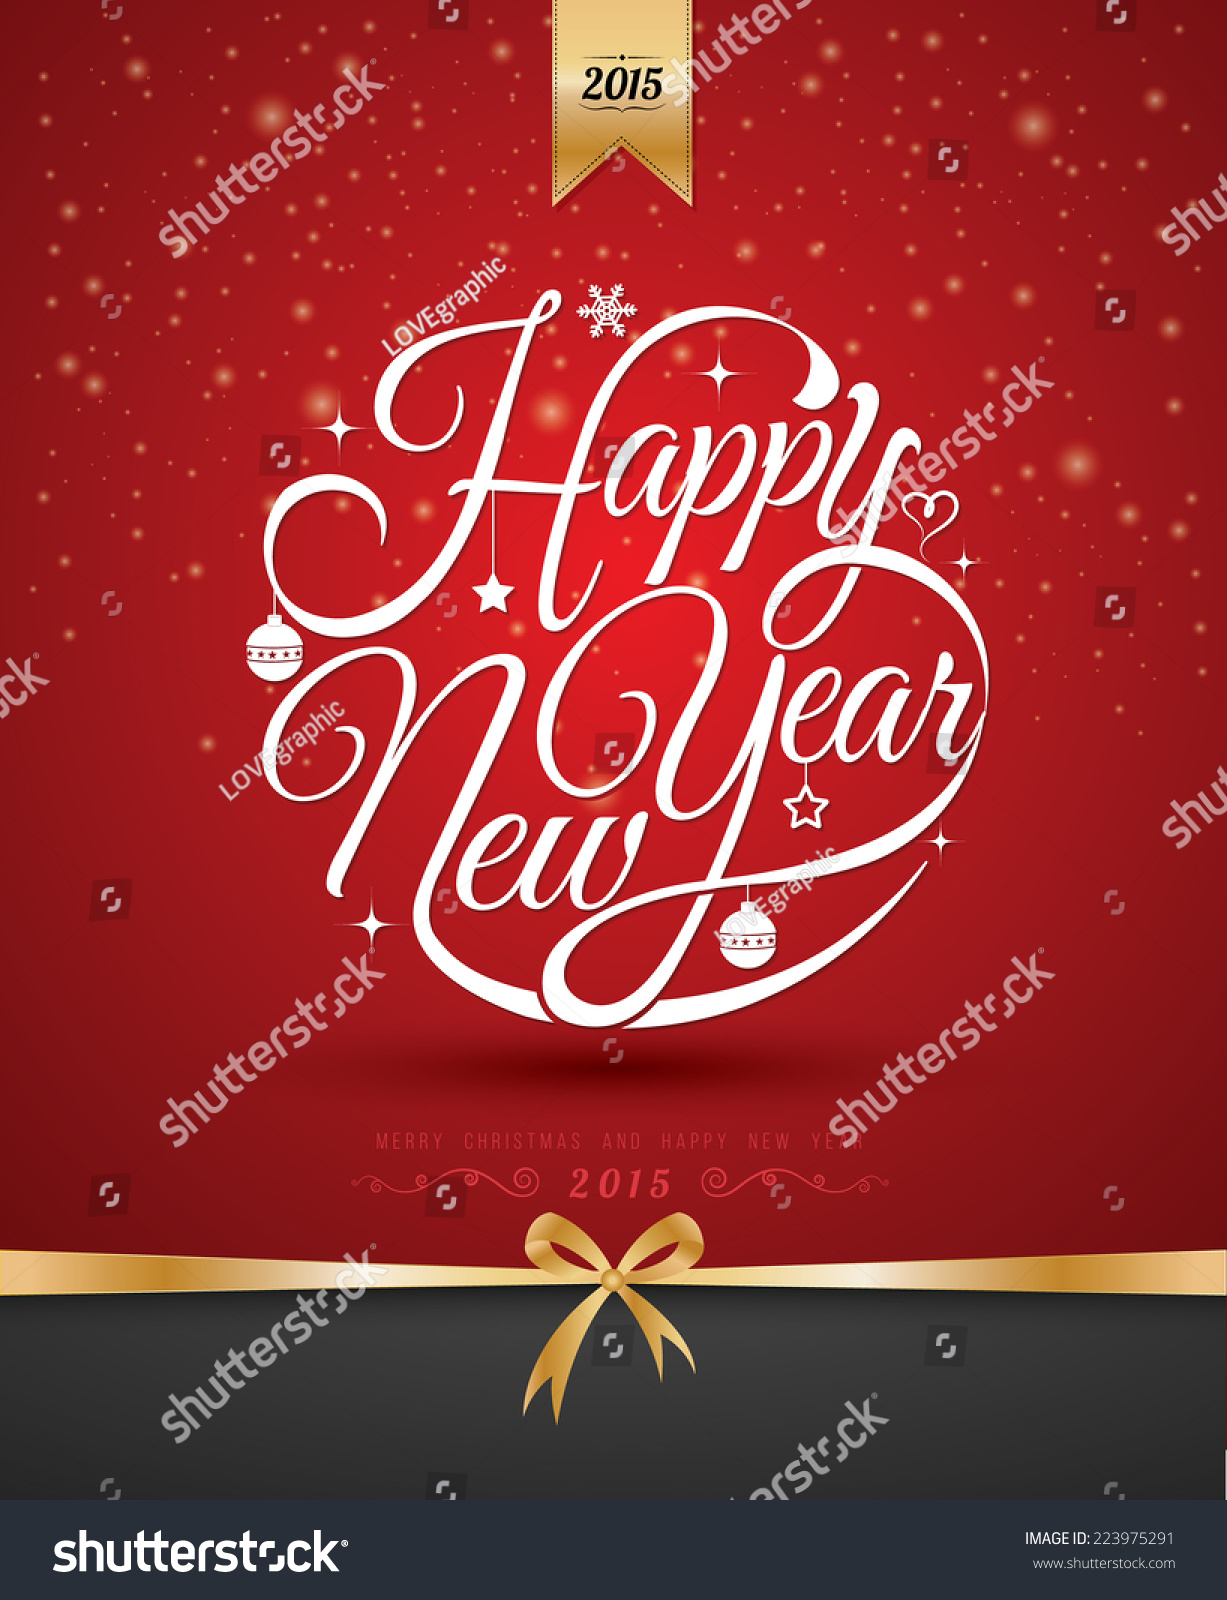 Happy New Year Lettering Greeting Card Stock Vector ...